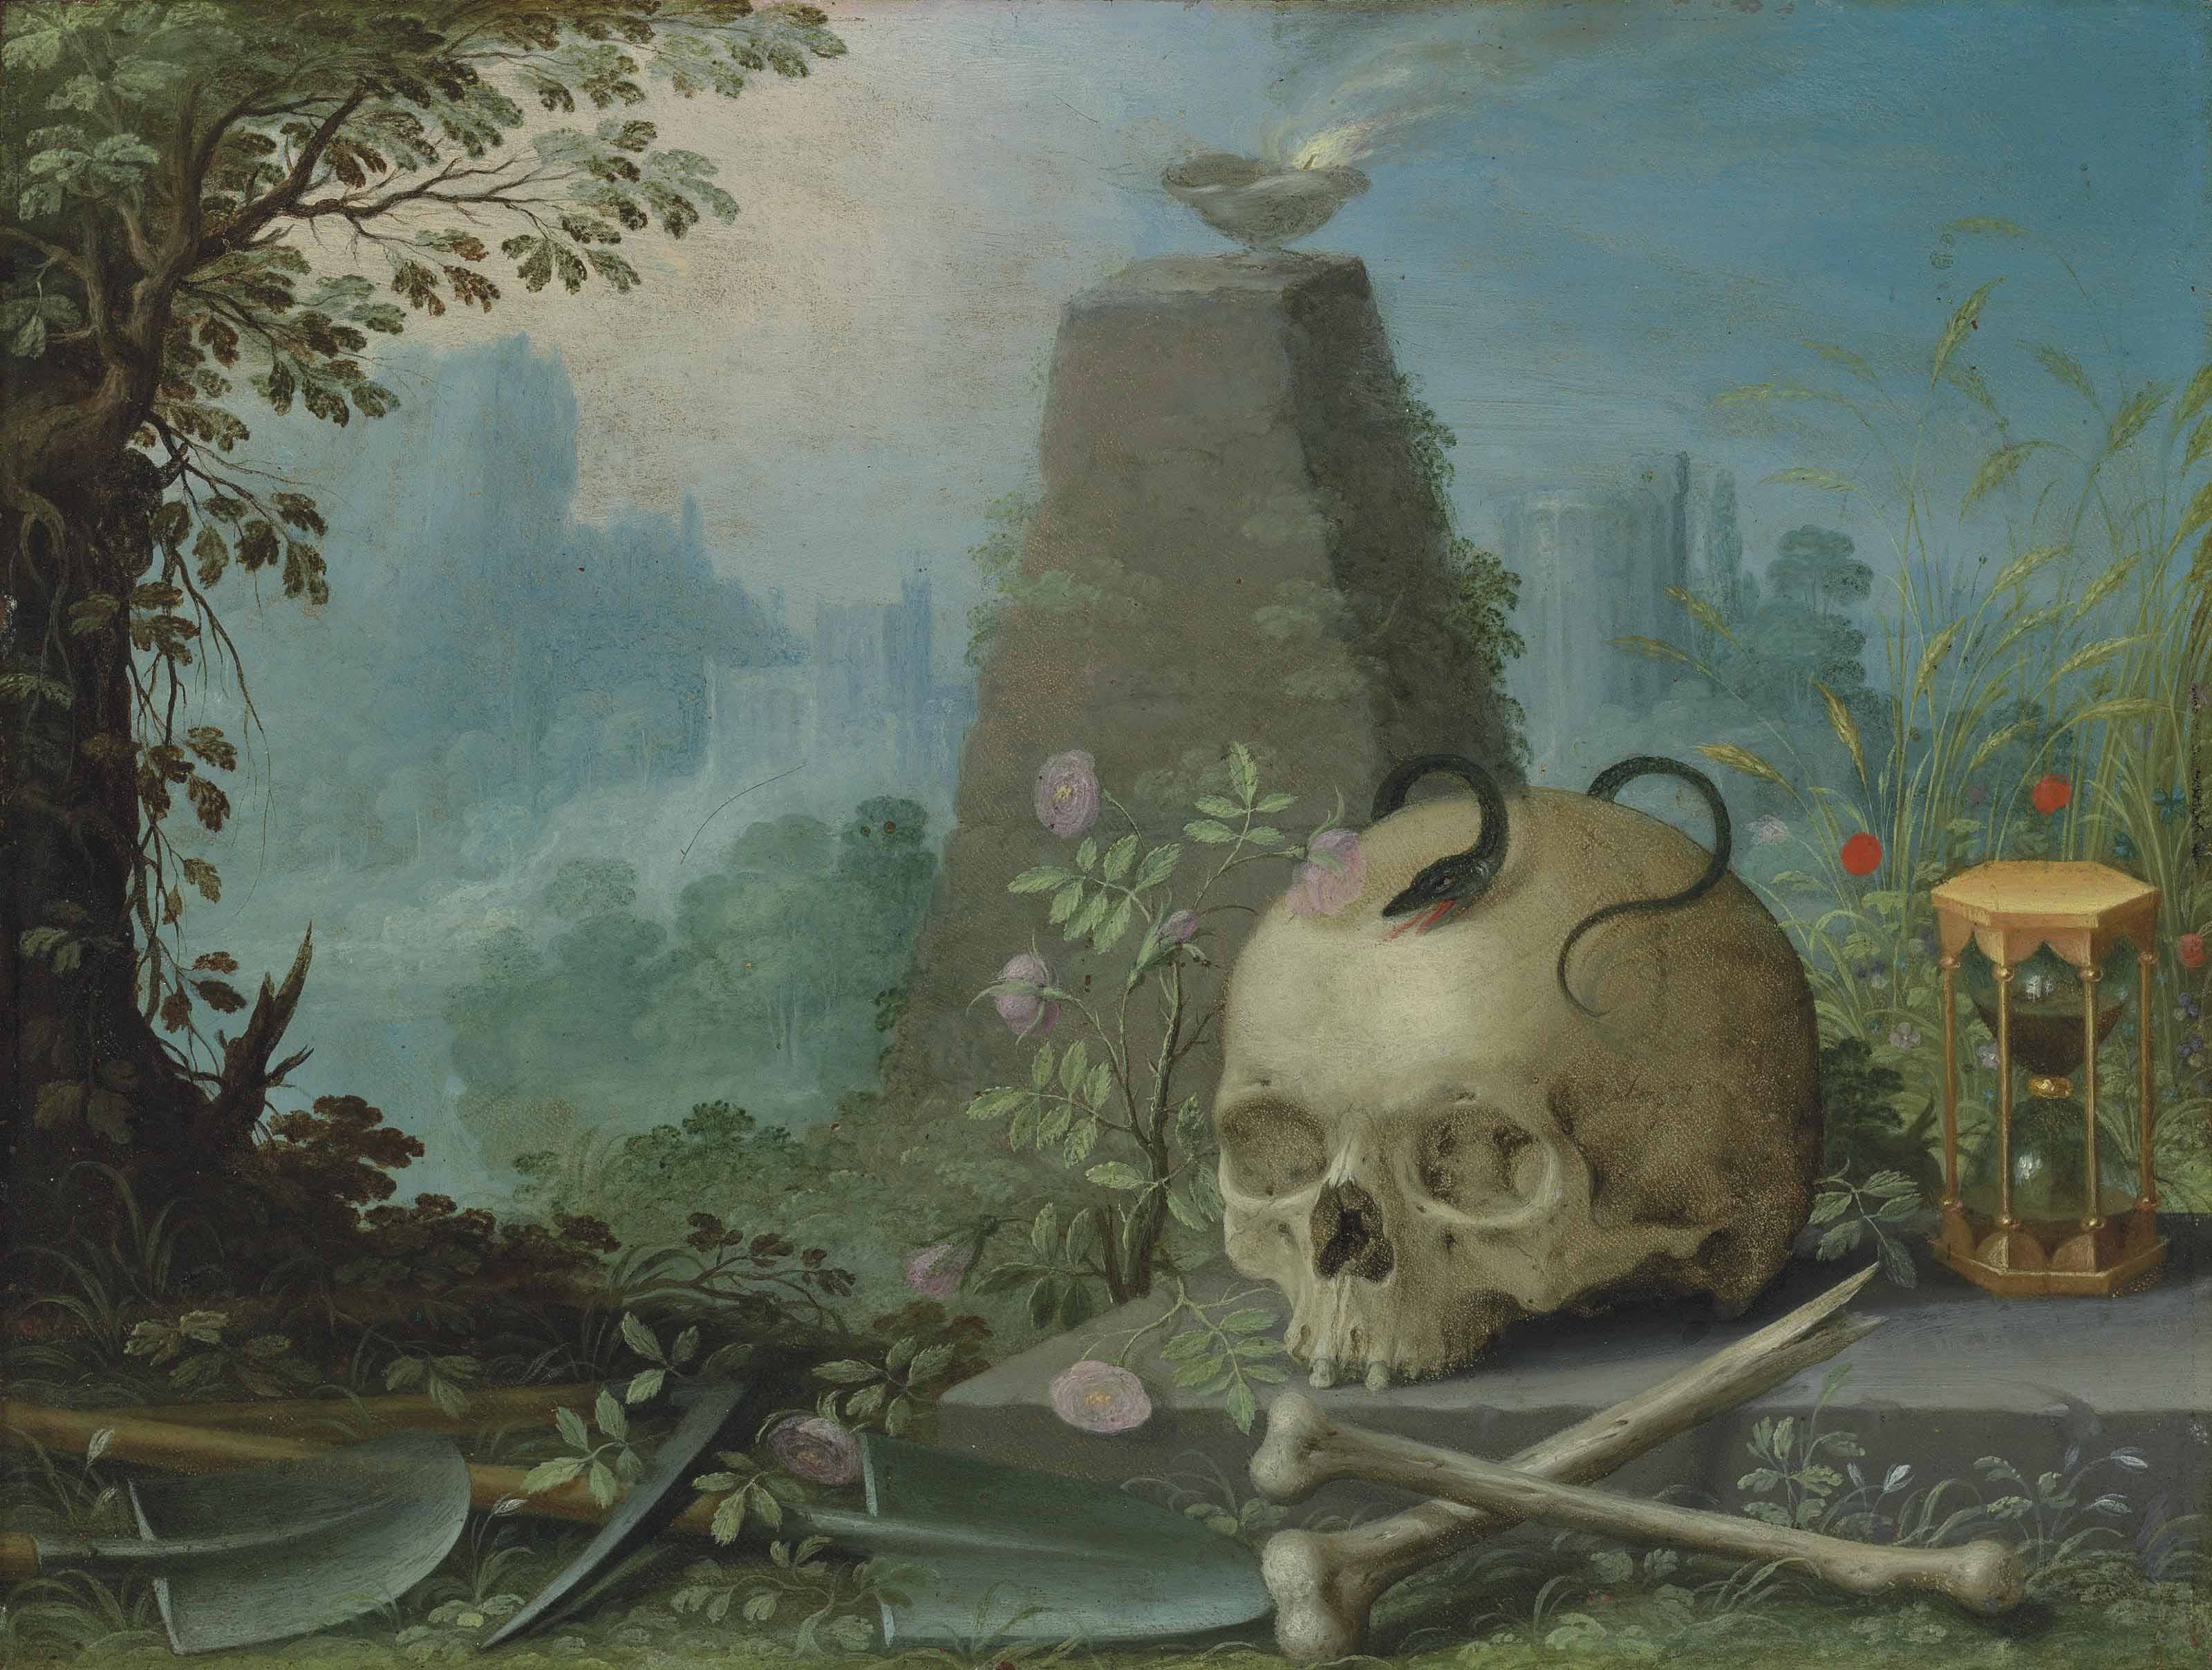 A skull with a snake, an hour-glass, a scythe, with roses and other wild flowers before a pyramid and sacrificial bowl, in an Arcadian landscape